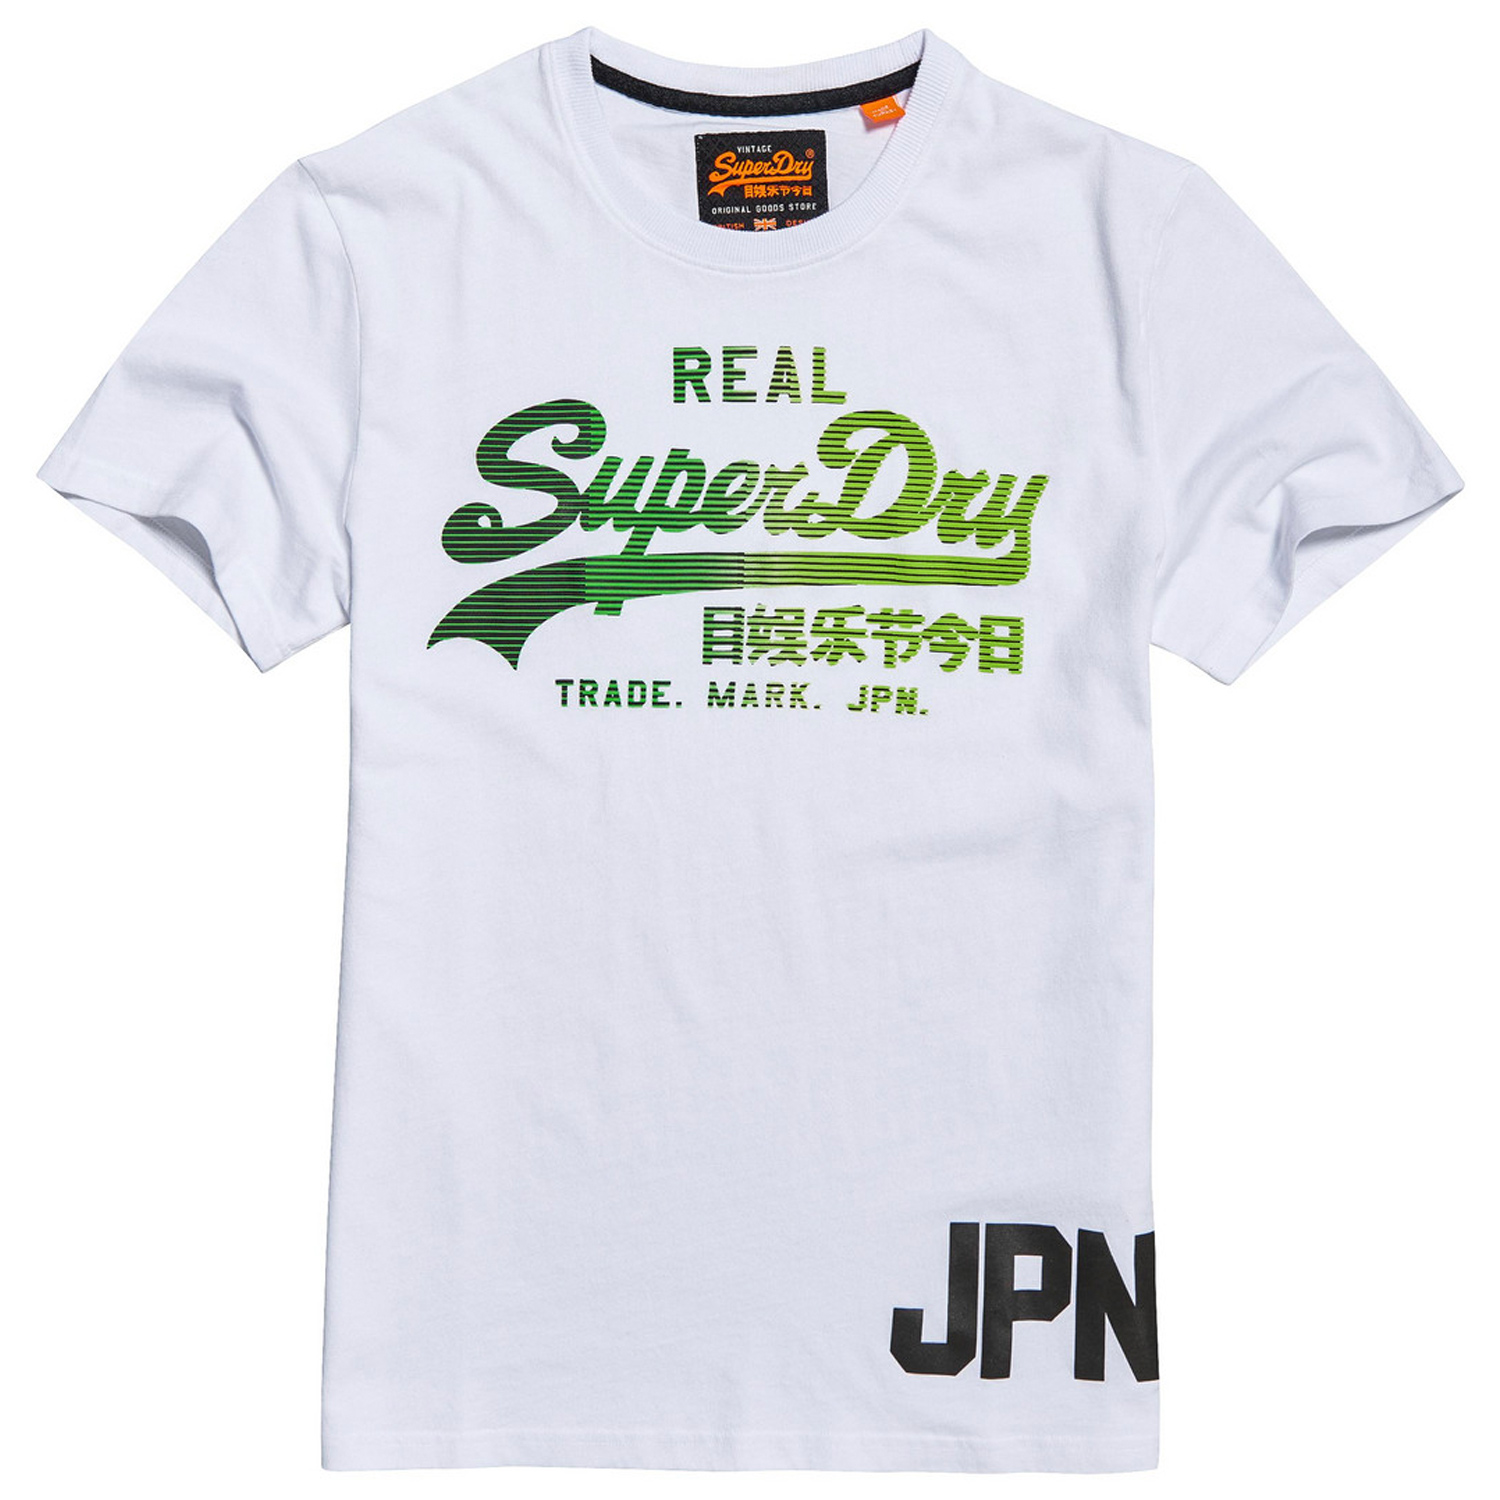 superdry vintage logo 1st herren t shirt ebay. Black Bedroom Furniture Sets. Home Design Ideas